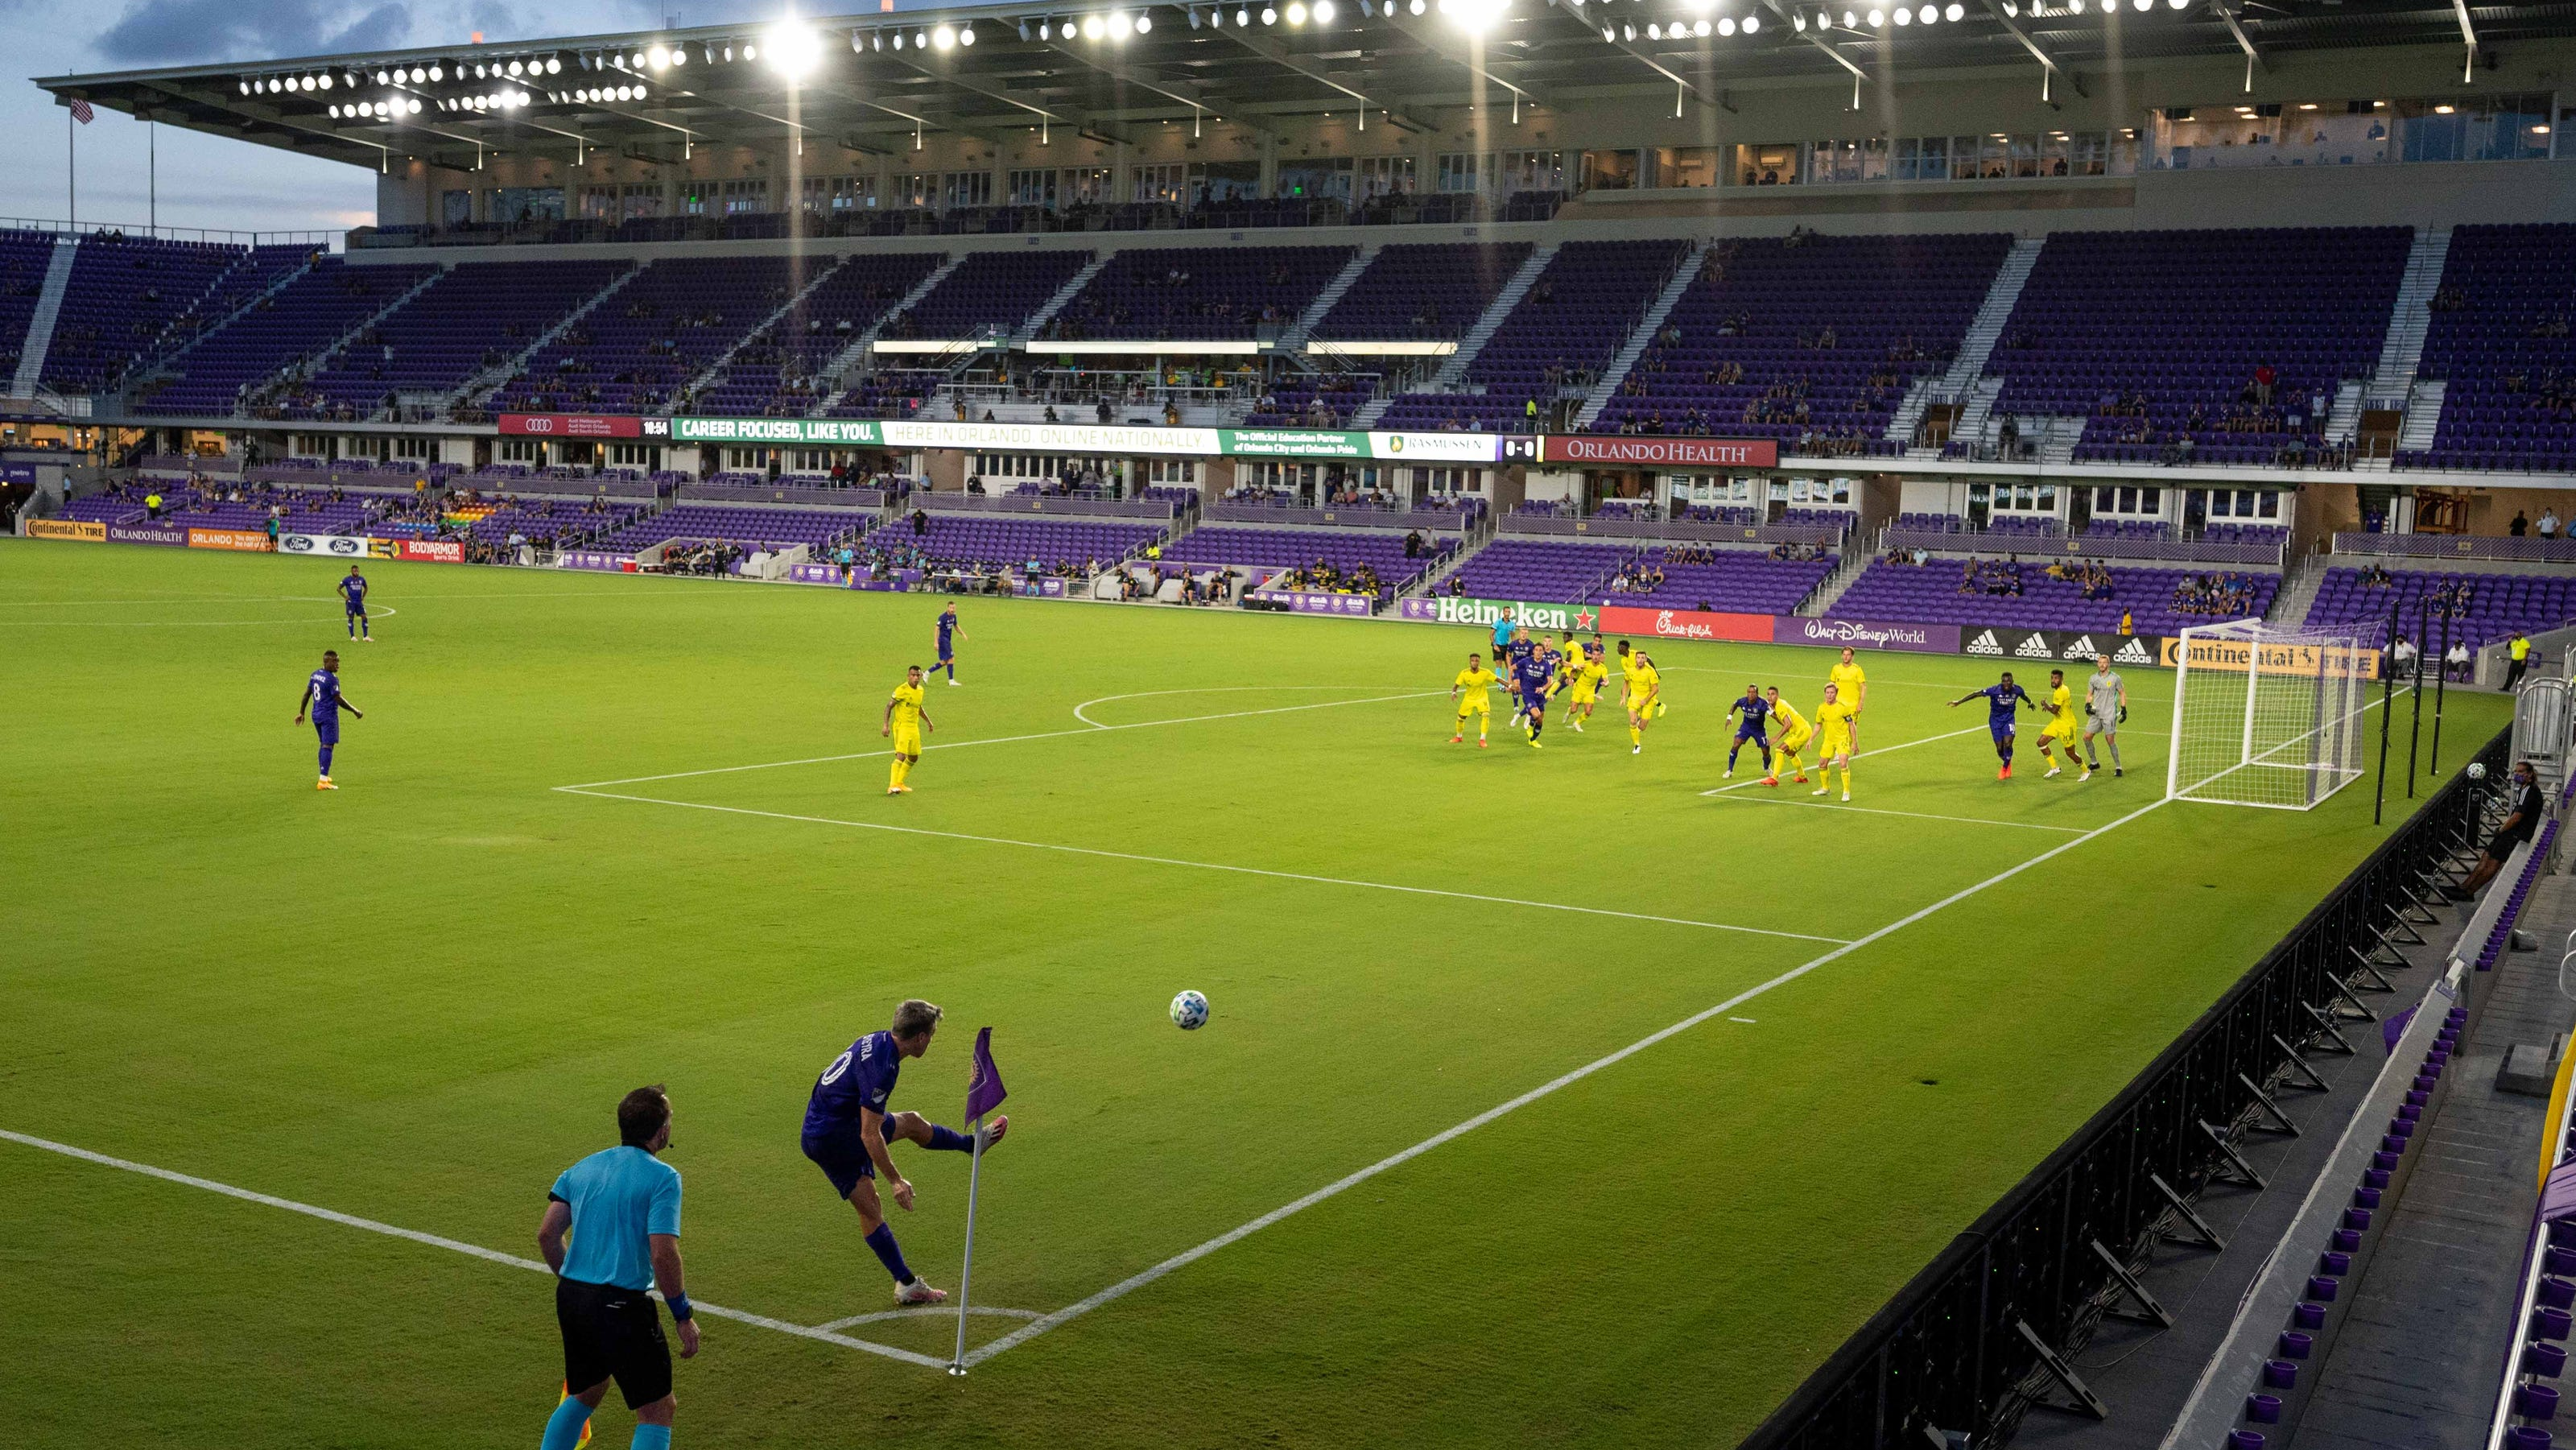 Mls Announces Three Initial Games For Phase Two Of The 2020 Season